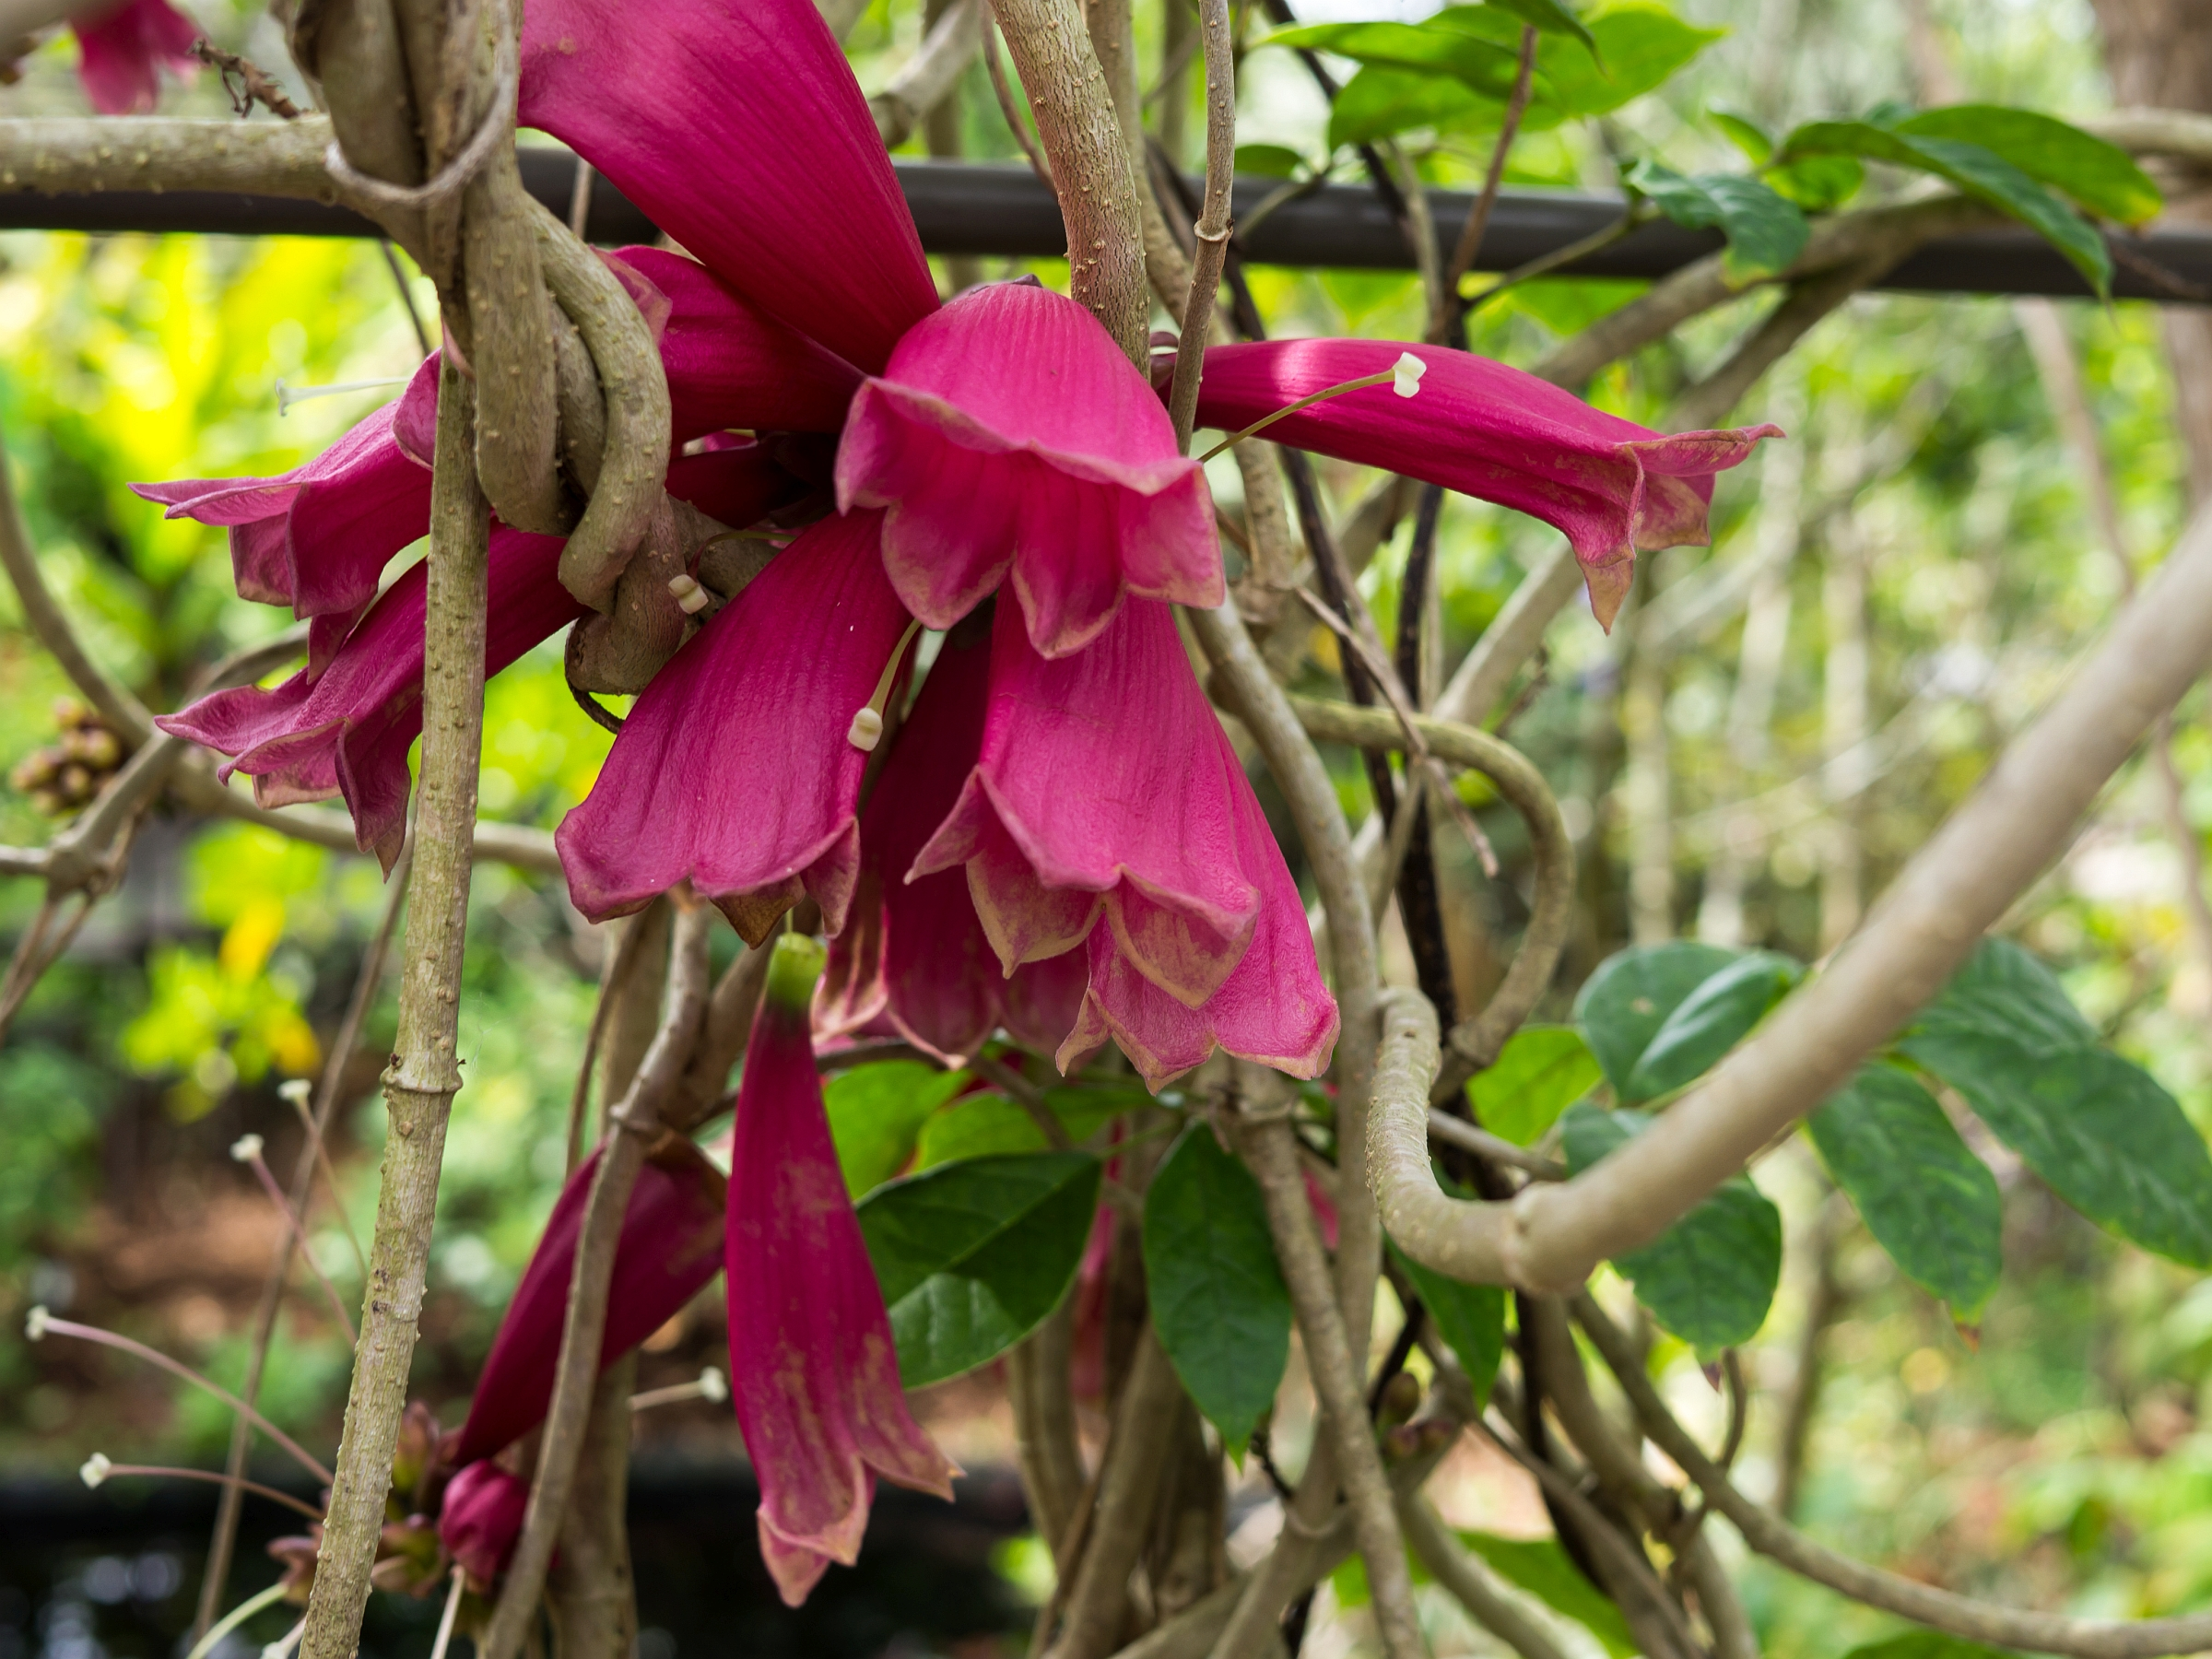 New Guinea Forest Bell Creeper Trumpet Vine Flowering Tropical Plant Unusual Pink Yellow Flowers